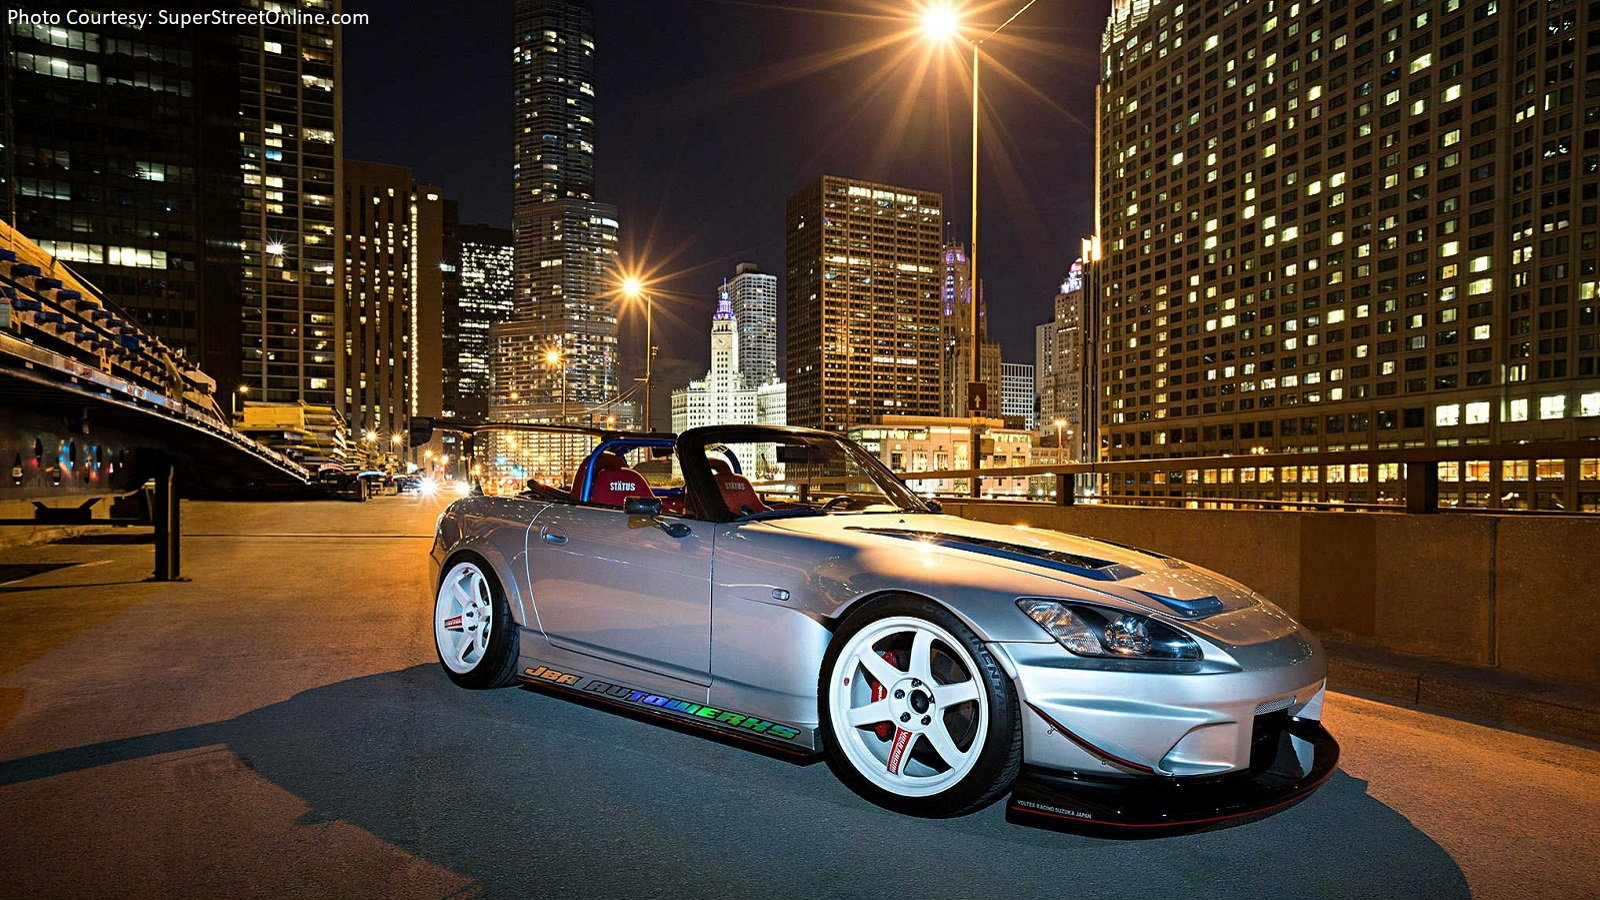 Mix and Match Day for This 2002 Honda S2000